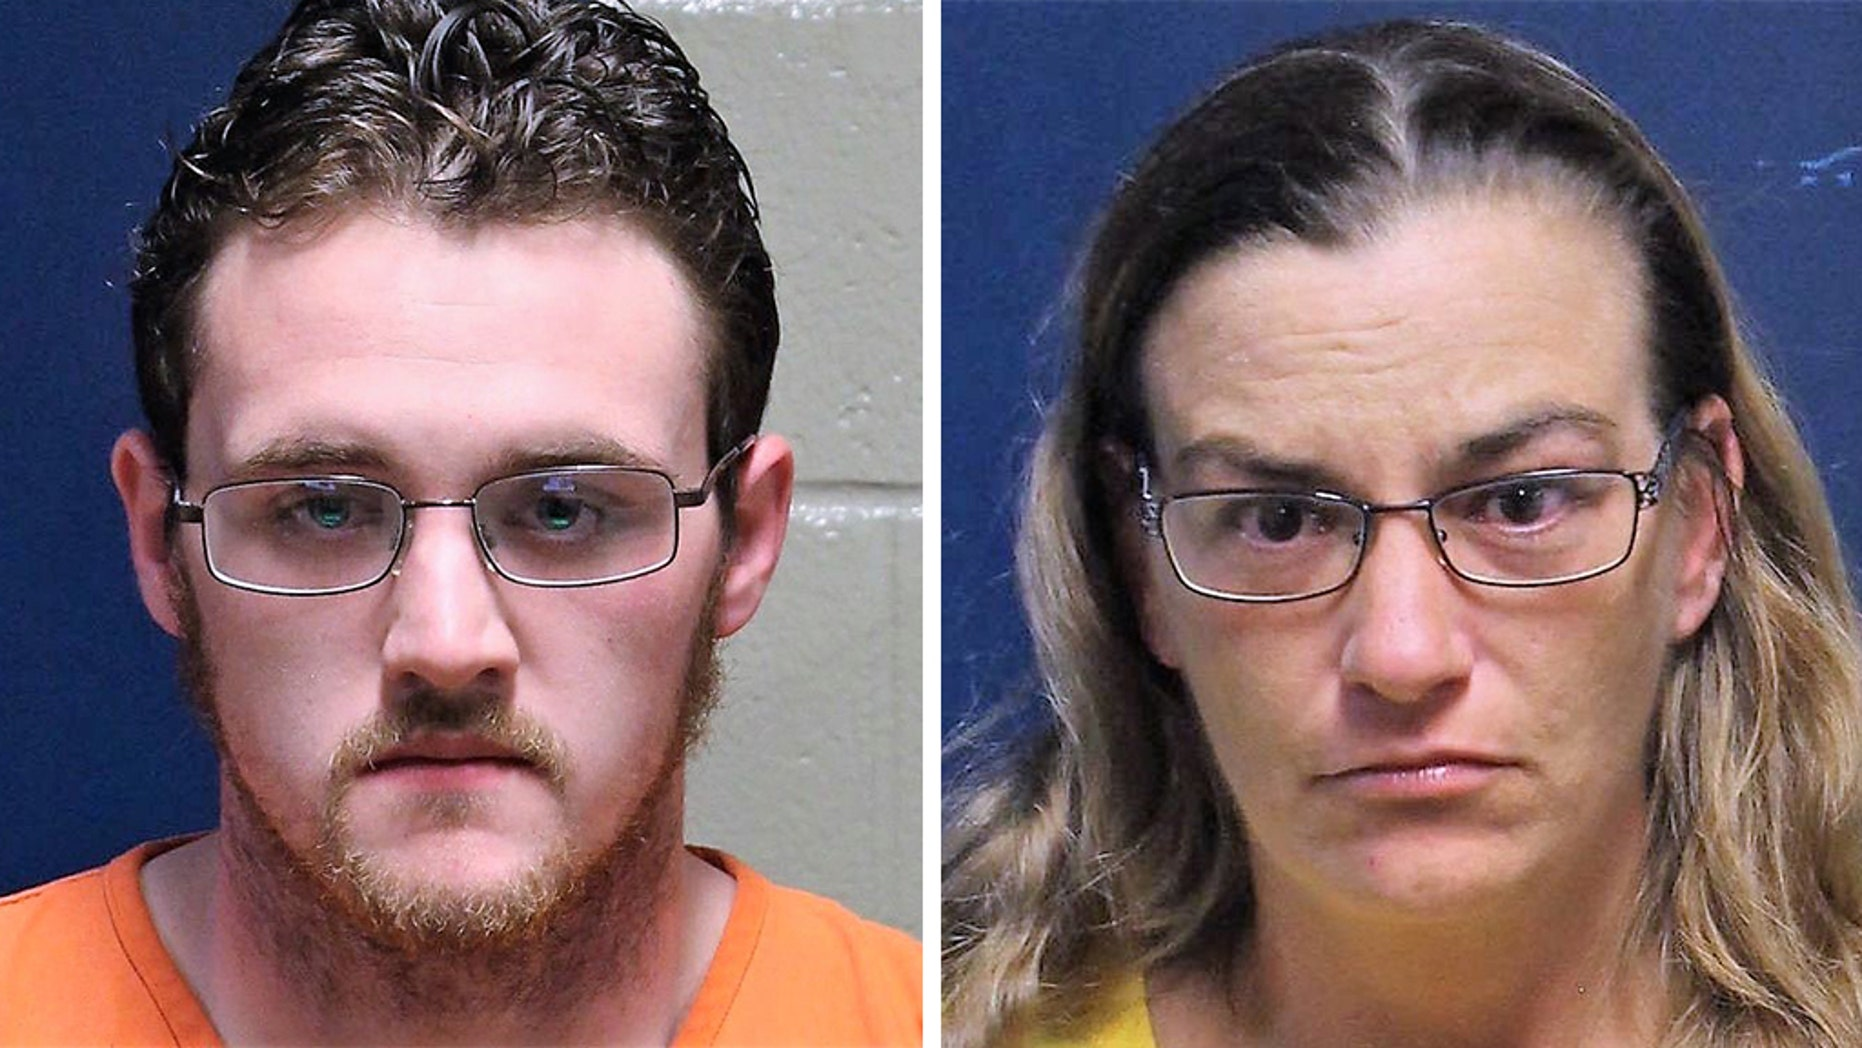 Tennessee authorities announced charges on Thursday against two people following the death of one suspect's husband.